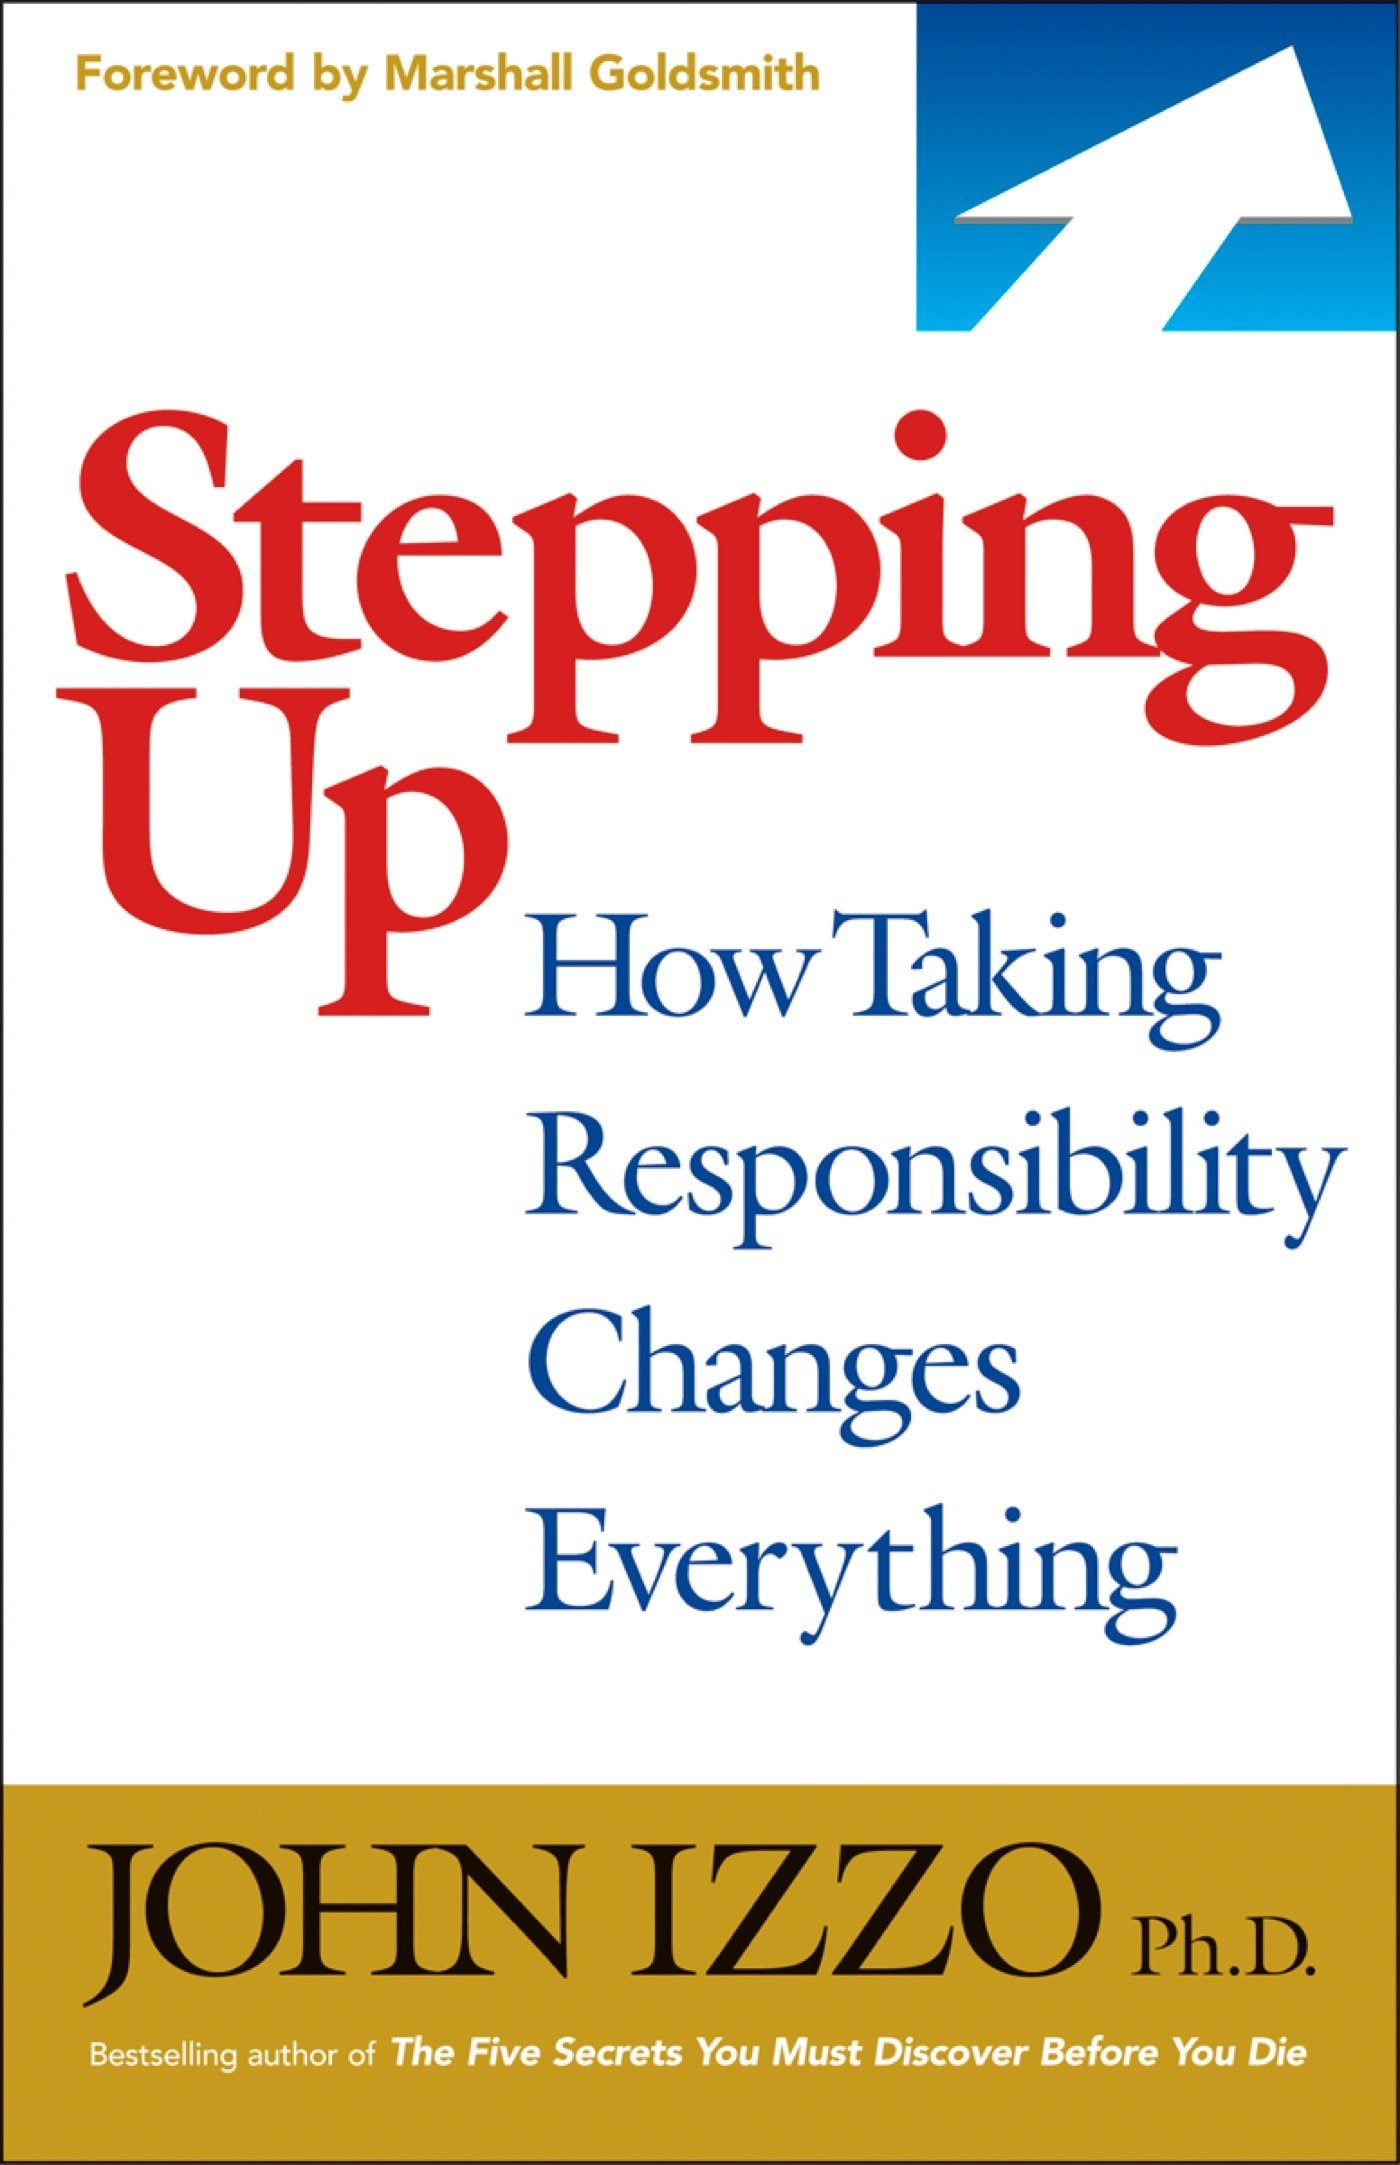 Stepping Up: How Taking Responsibility Changes Everything: John Izzo Ph.D.:  9781609940577: Amazon.com: Books